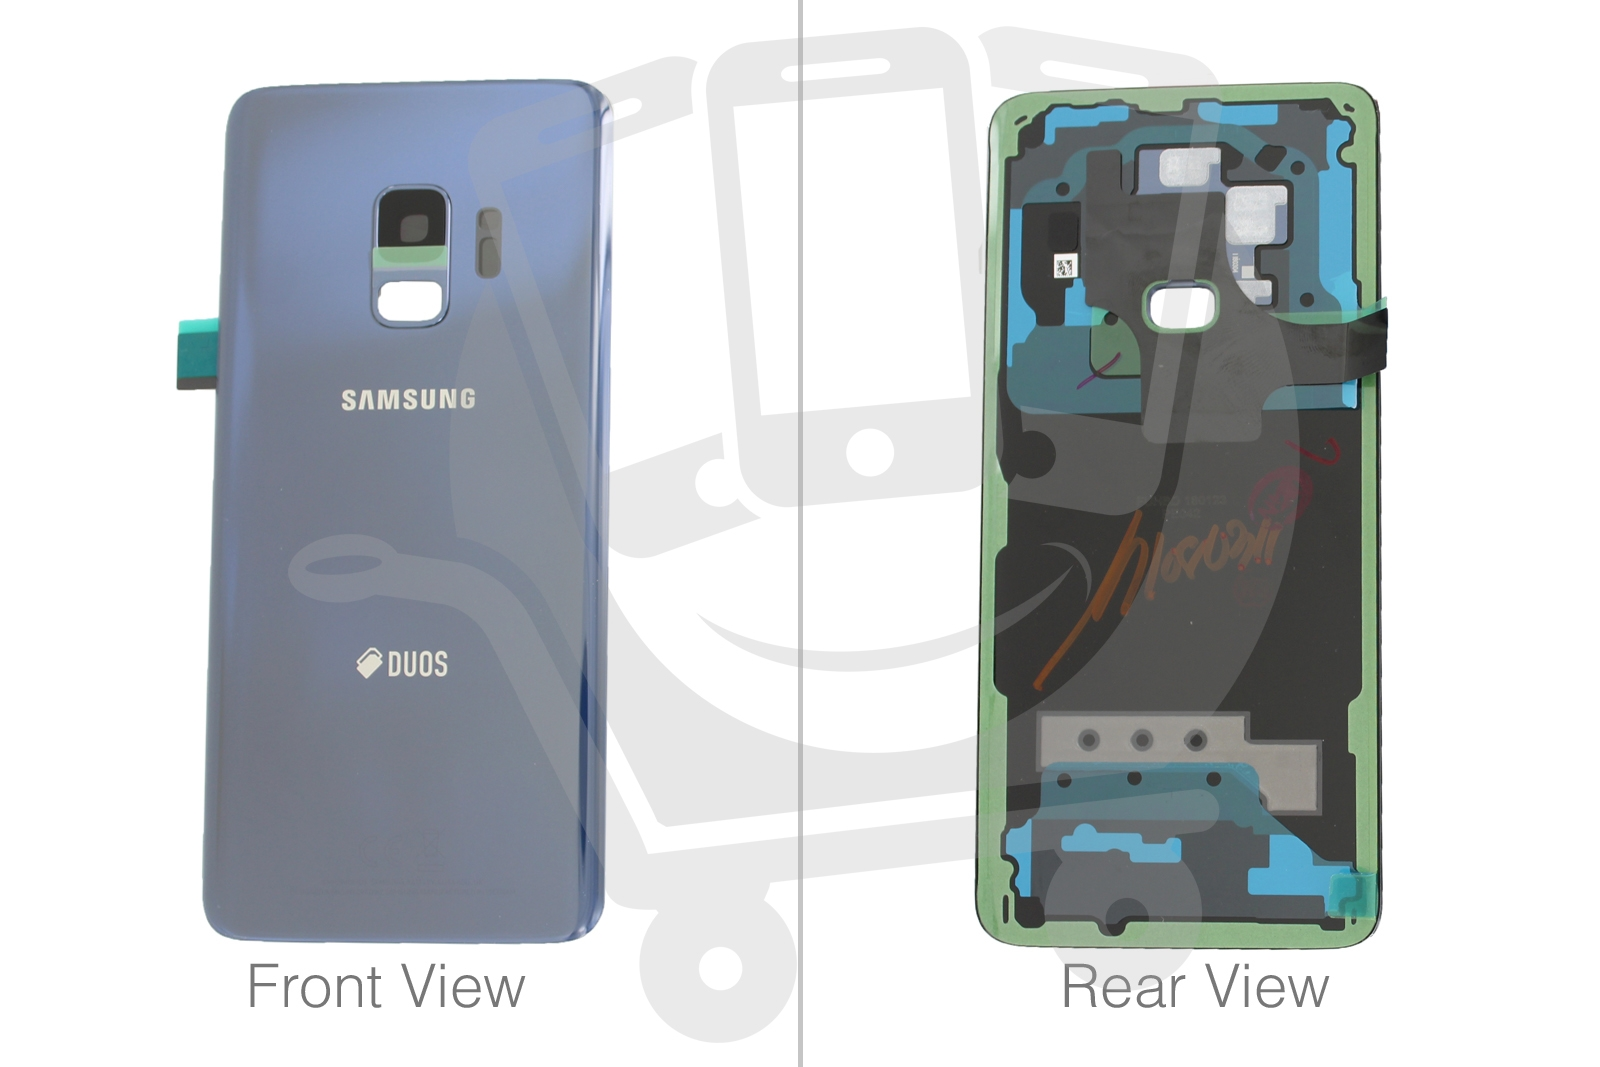 Details about Genuine Samsung Galaxy S9 Hybrid SM-G960 Coral Blue Rear /  Battery Cover - GH82-